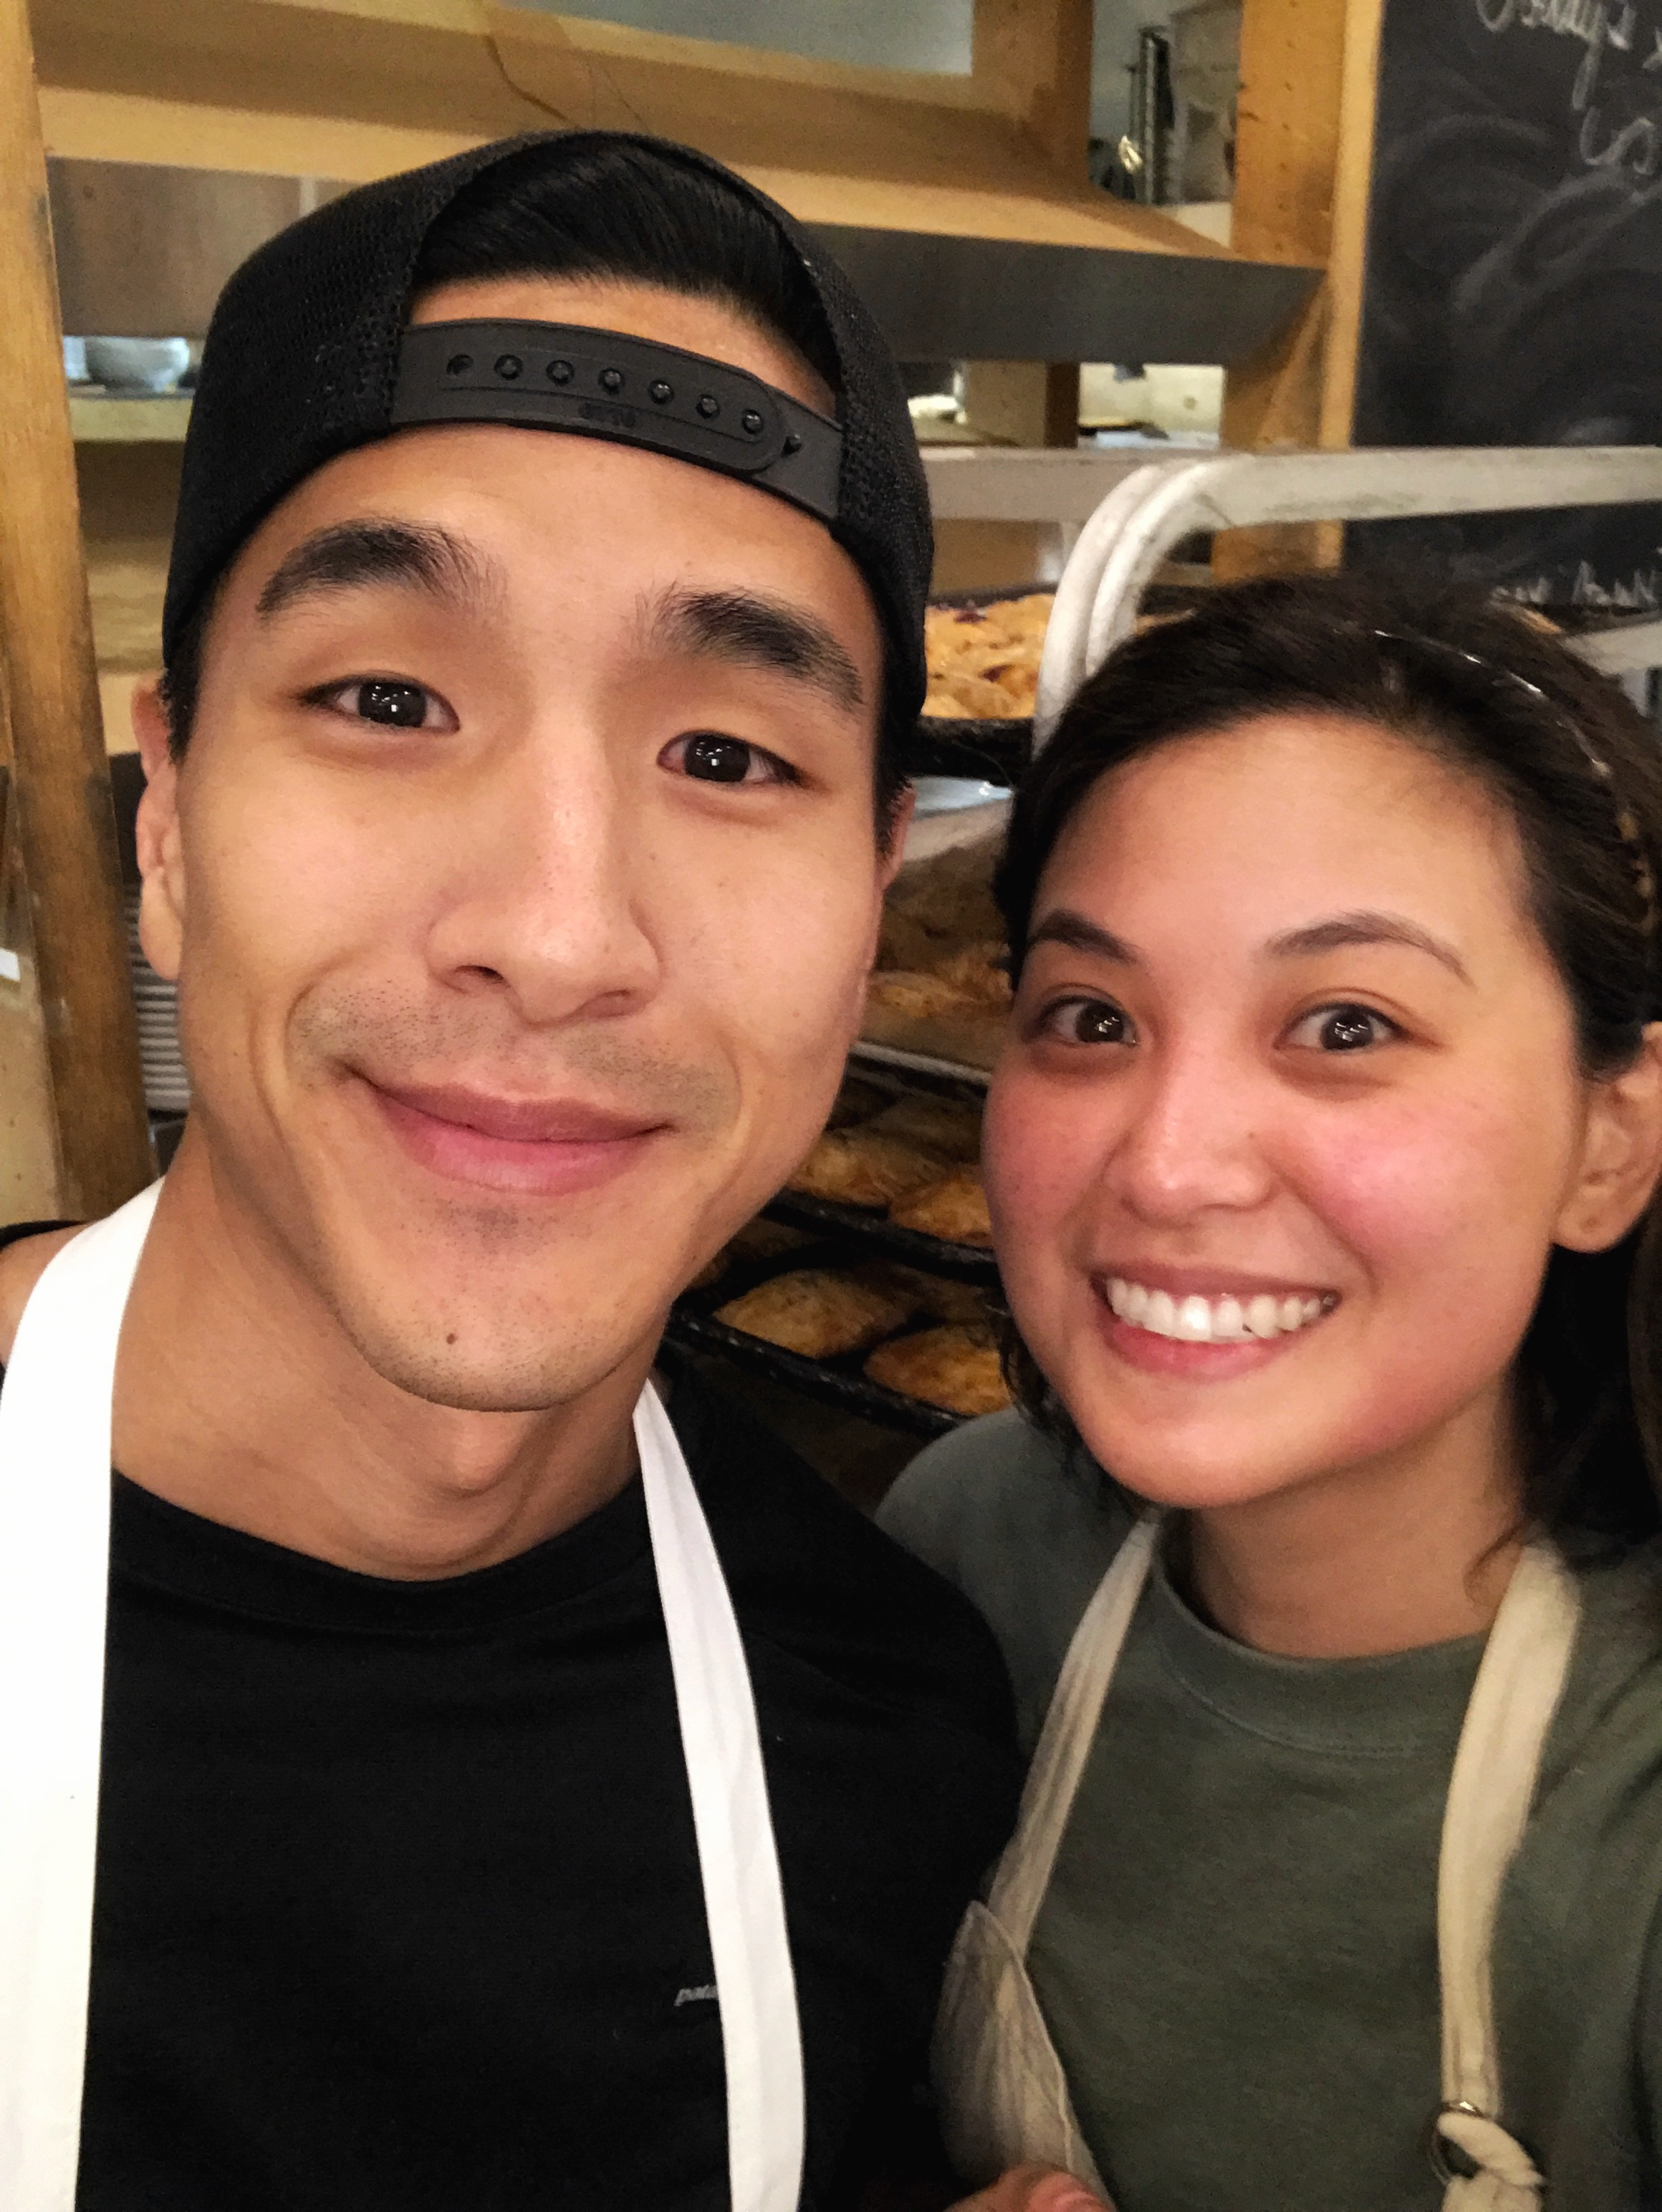 Kelvin and I were up at 2:30am baking off all the pies! #bakerylife